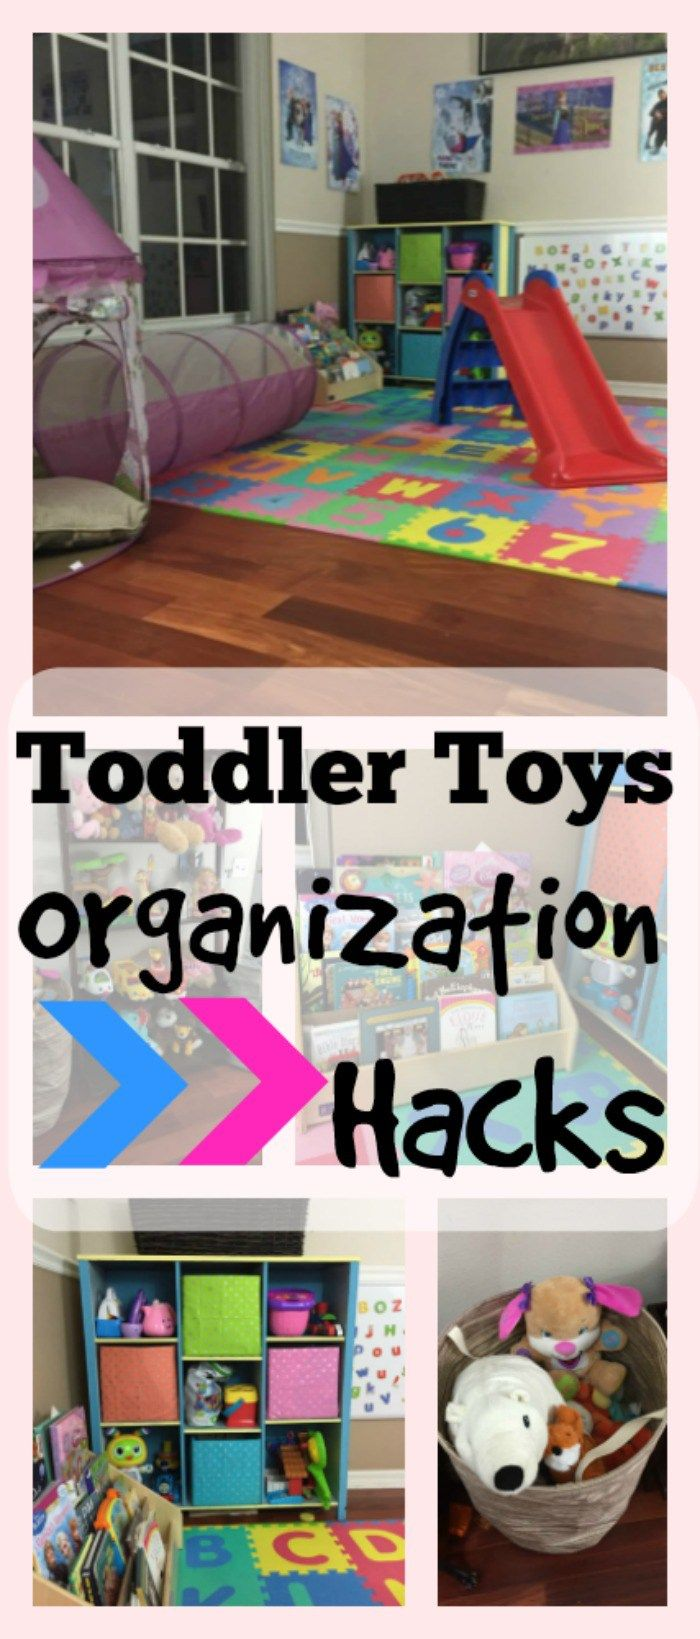 Great hacks for organizing toys around the house!